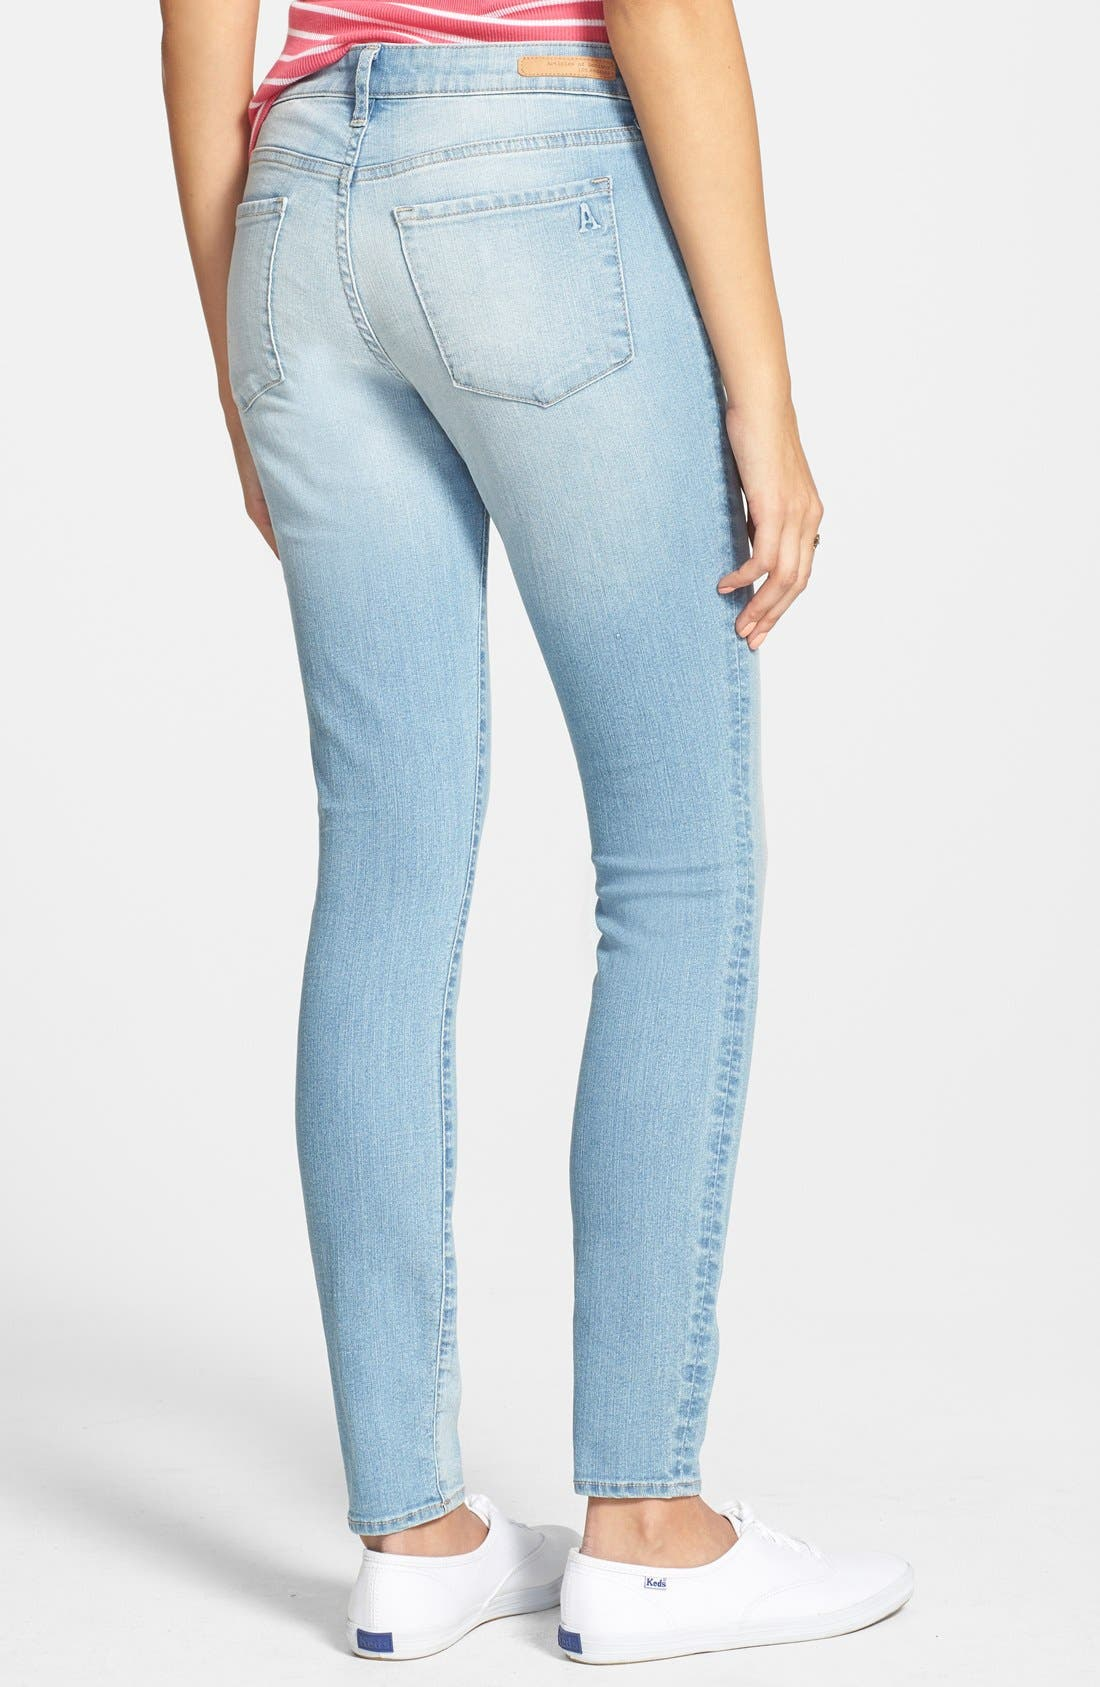 'Sarah' Skinny Jeans,                             Alternate thumbnail 2, color,                             Light Wash